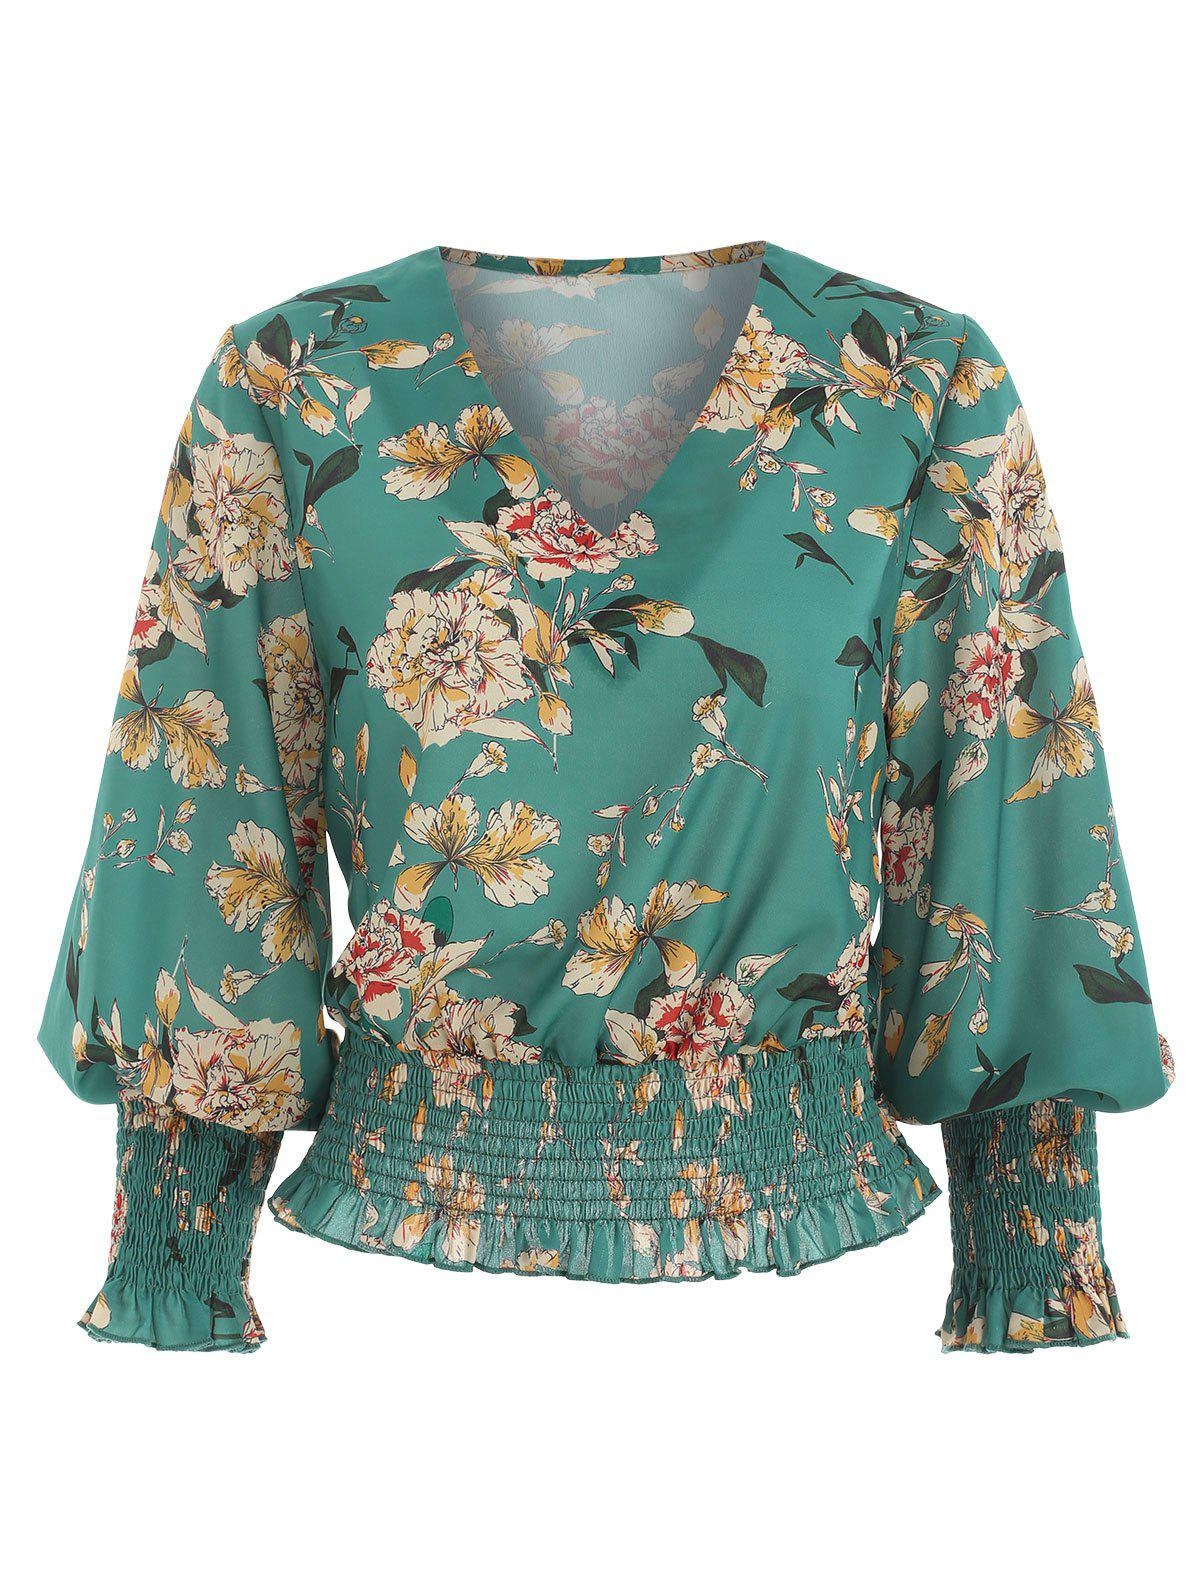 V Neck Floral Print Blouse - GREENISH BLUE XL